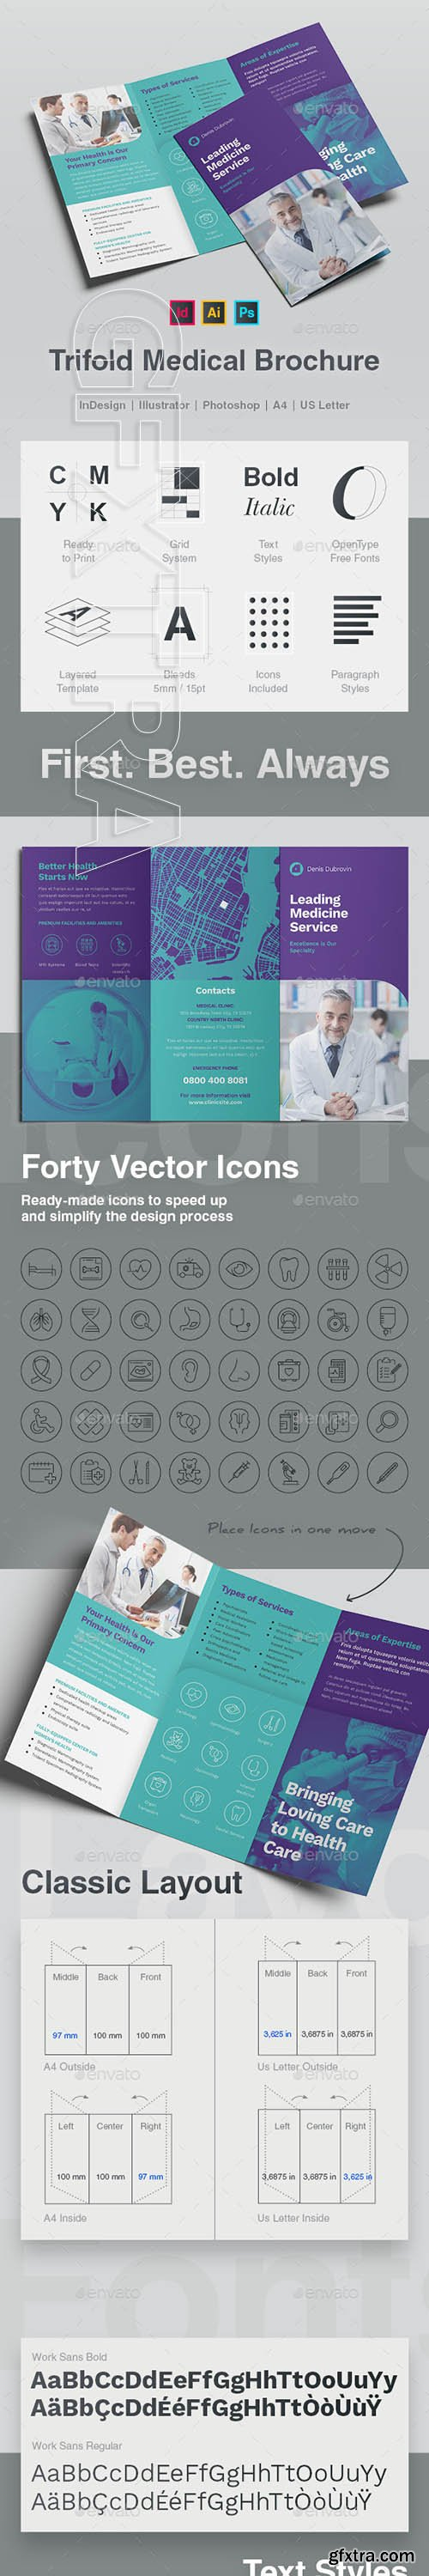 GraphicRiver - Trifold Medical Brochure 22866269